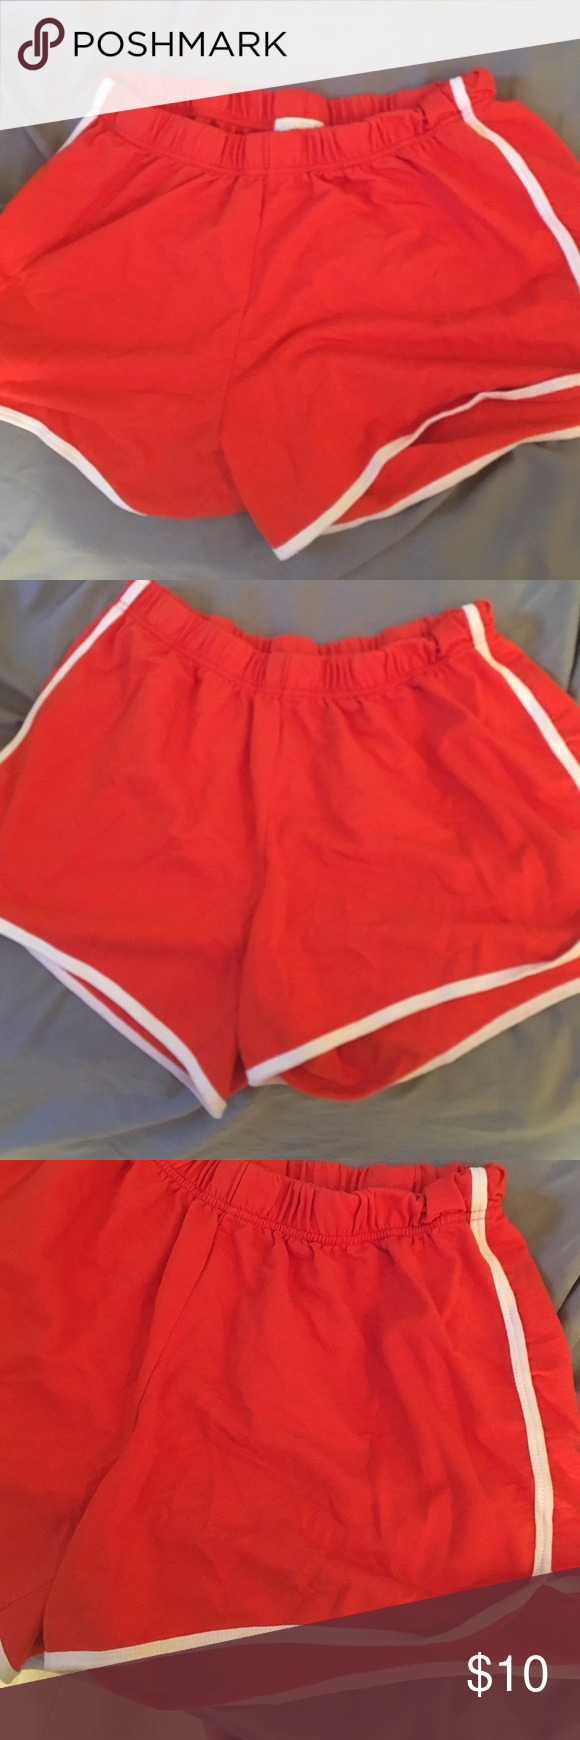 Short shorts! Very comfortable and stretchy! They say 1x but they fit like a XLarge. Best for bike riding or a fun day at the beach. 100% cotton Shorts Bermudas